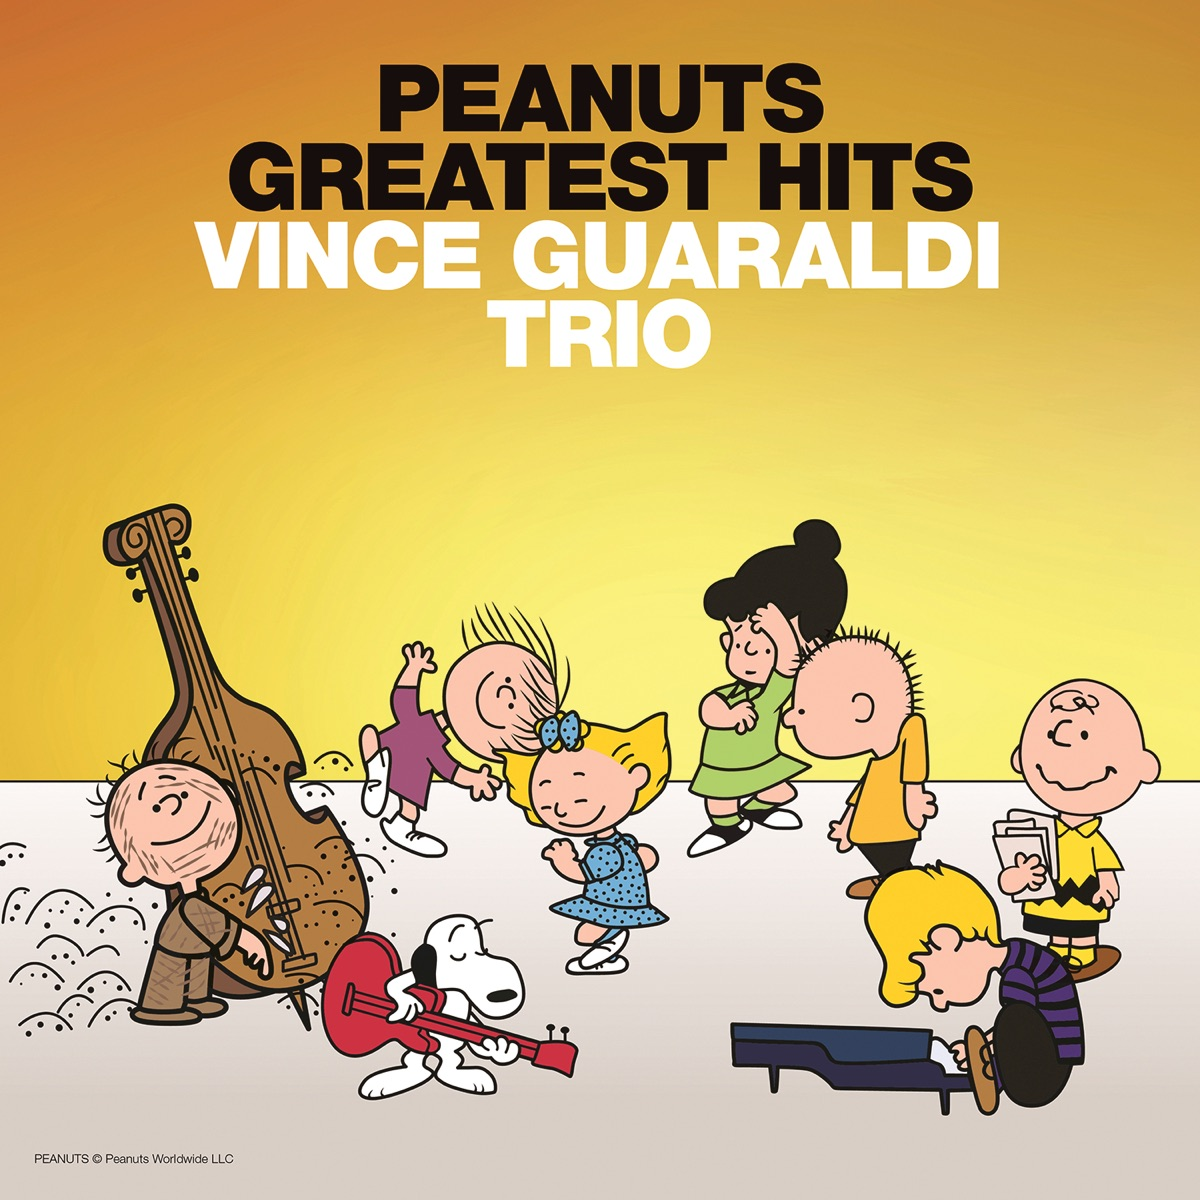 Peanuts Greatest Hits Music From the TV Specials Vince Guaraldi Trio CD cover